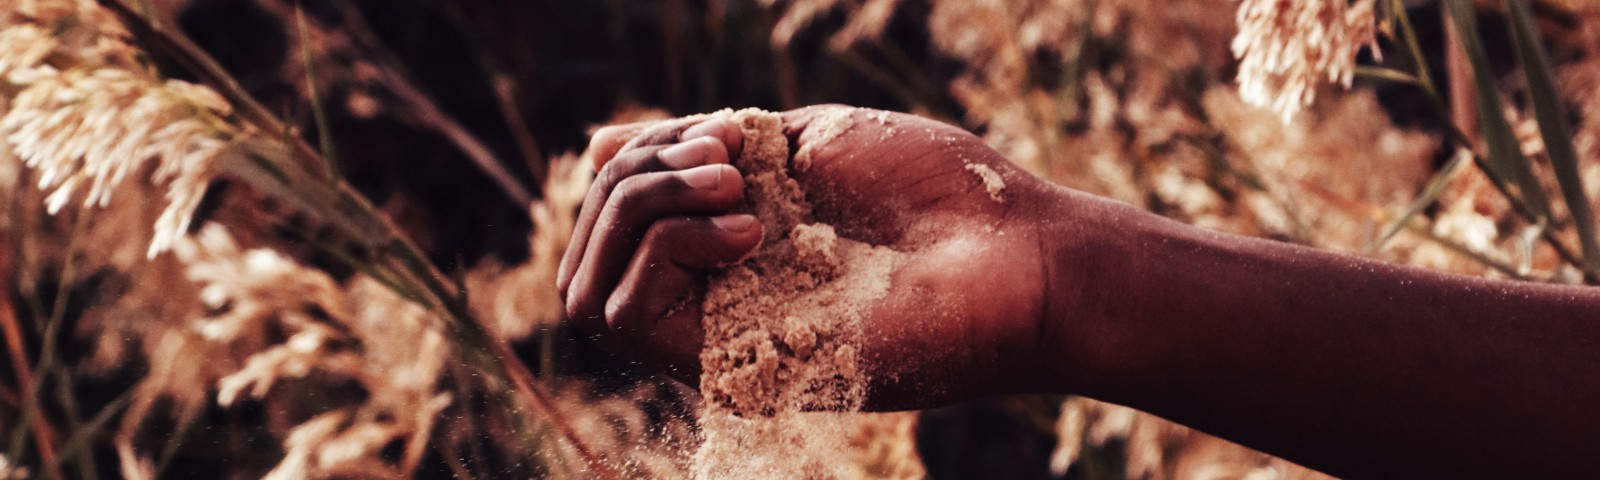 Dry dirt (or sand) falls from a clenched hand.